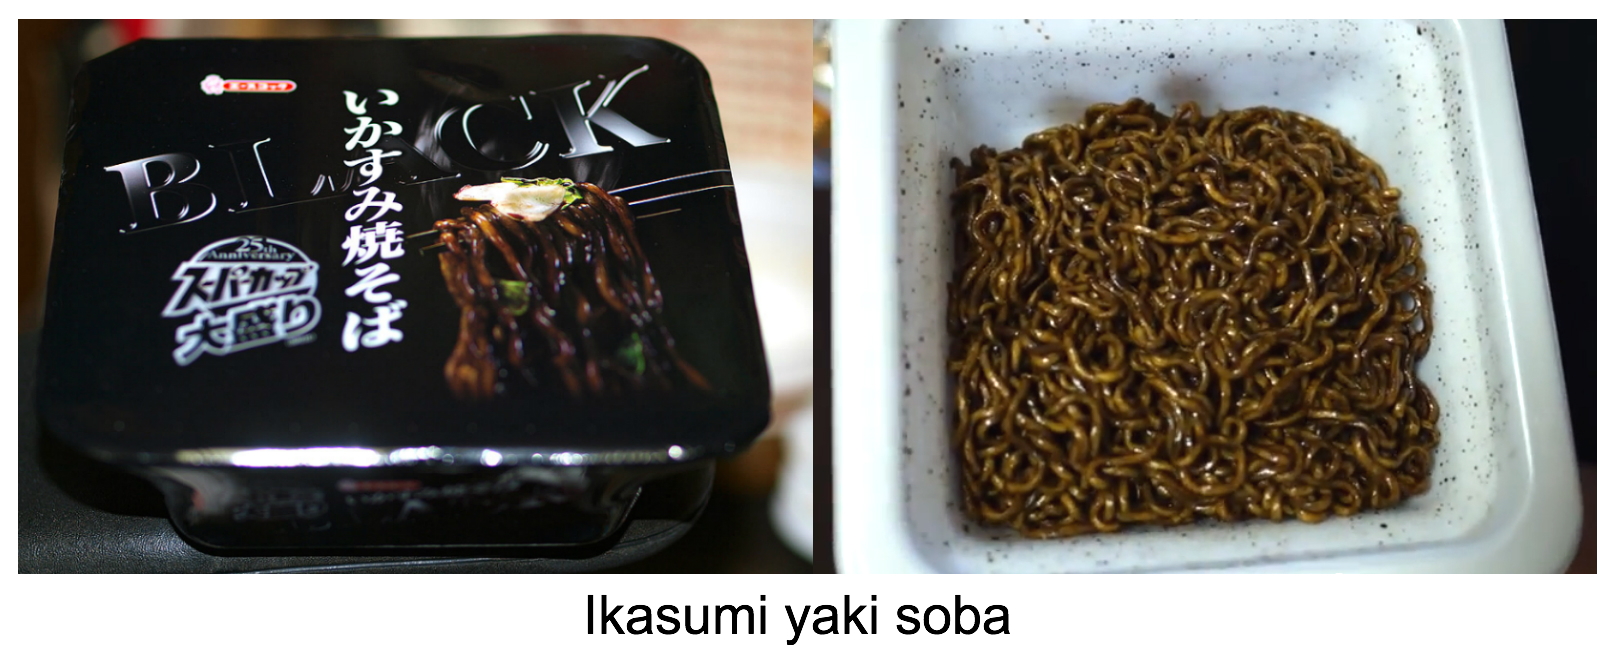 Black yaki soba noodles in Japan made with squid ink sumi yaki soba in Japan